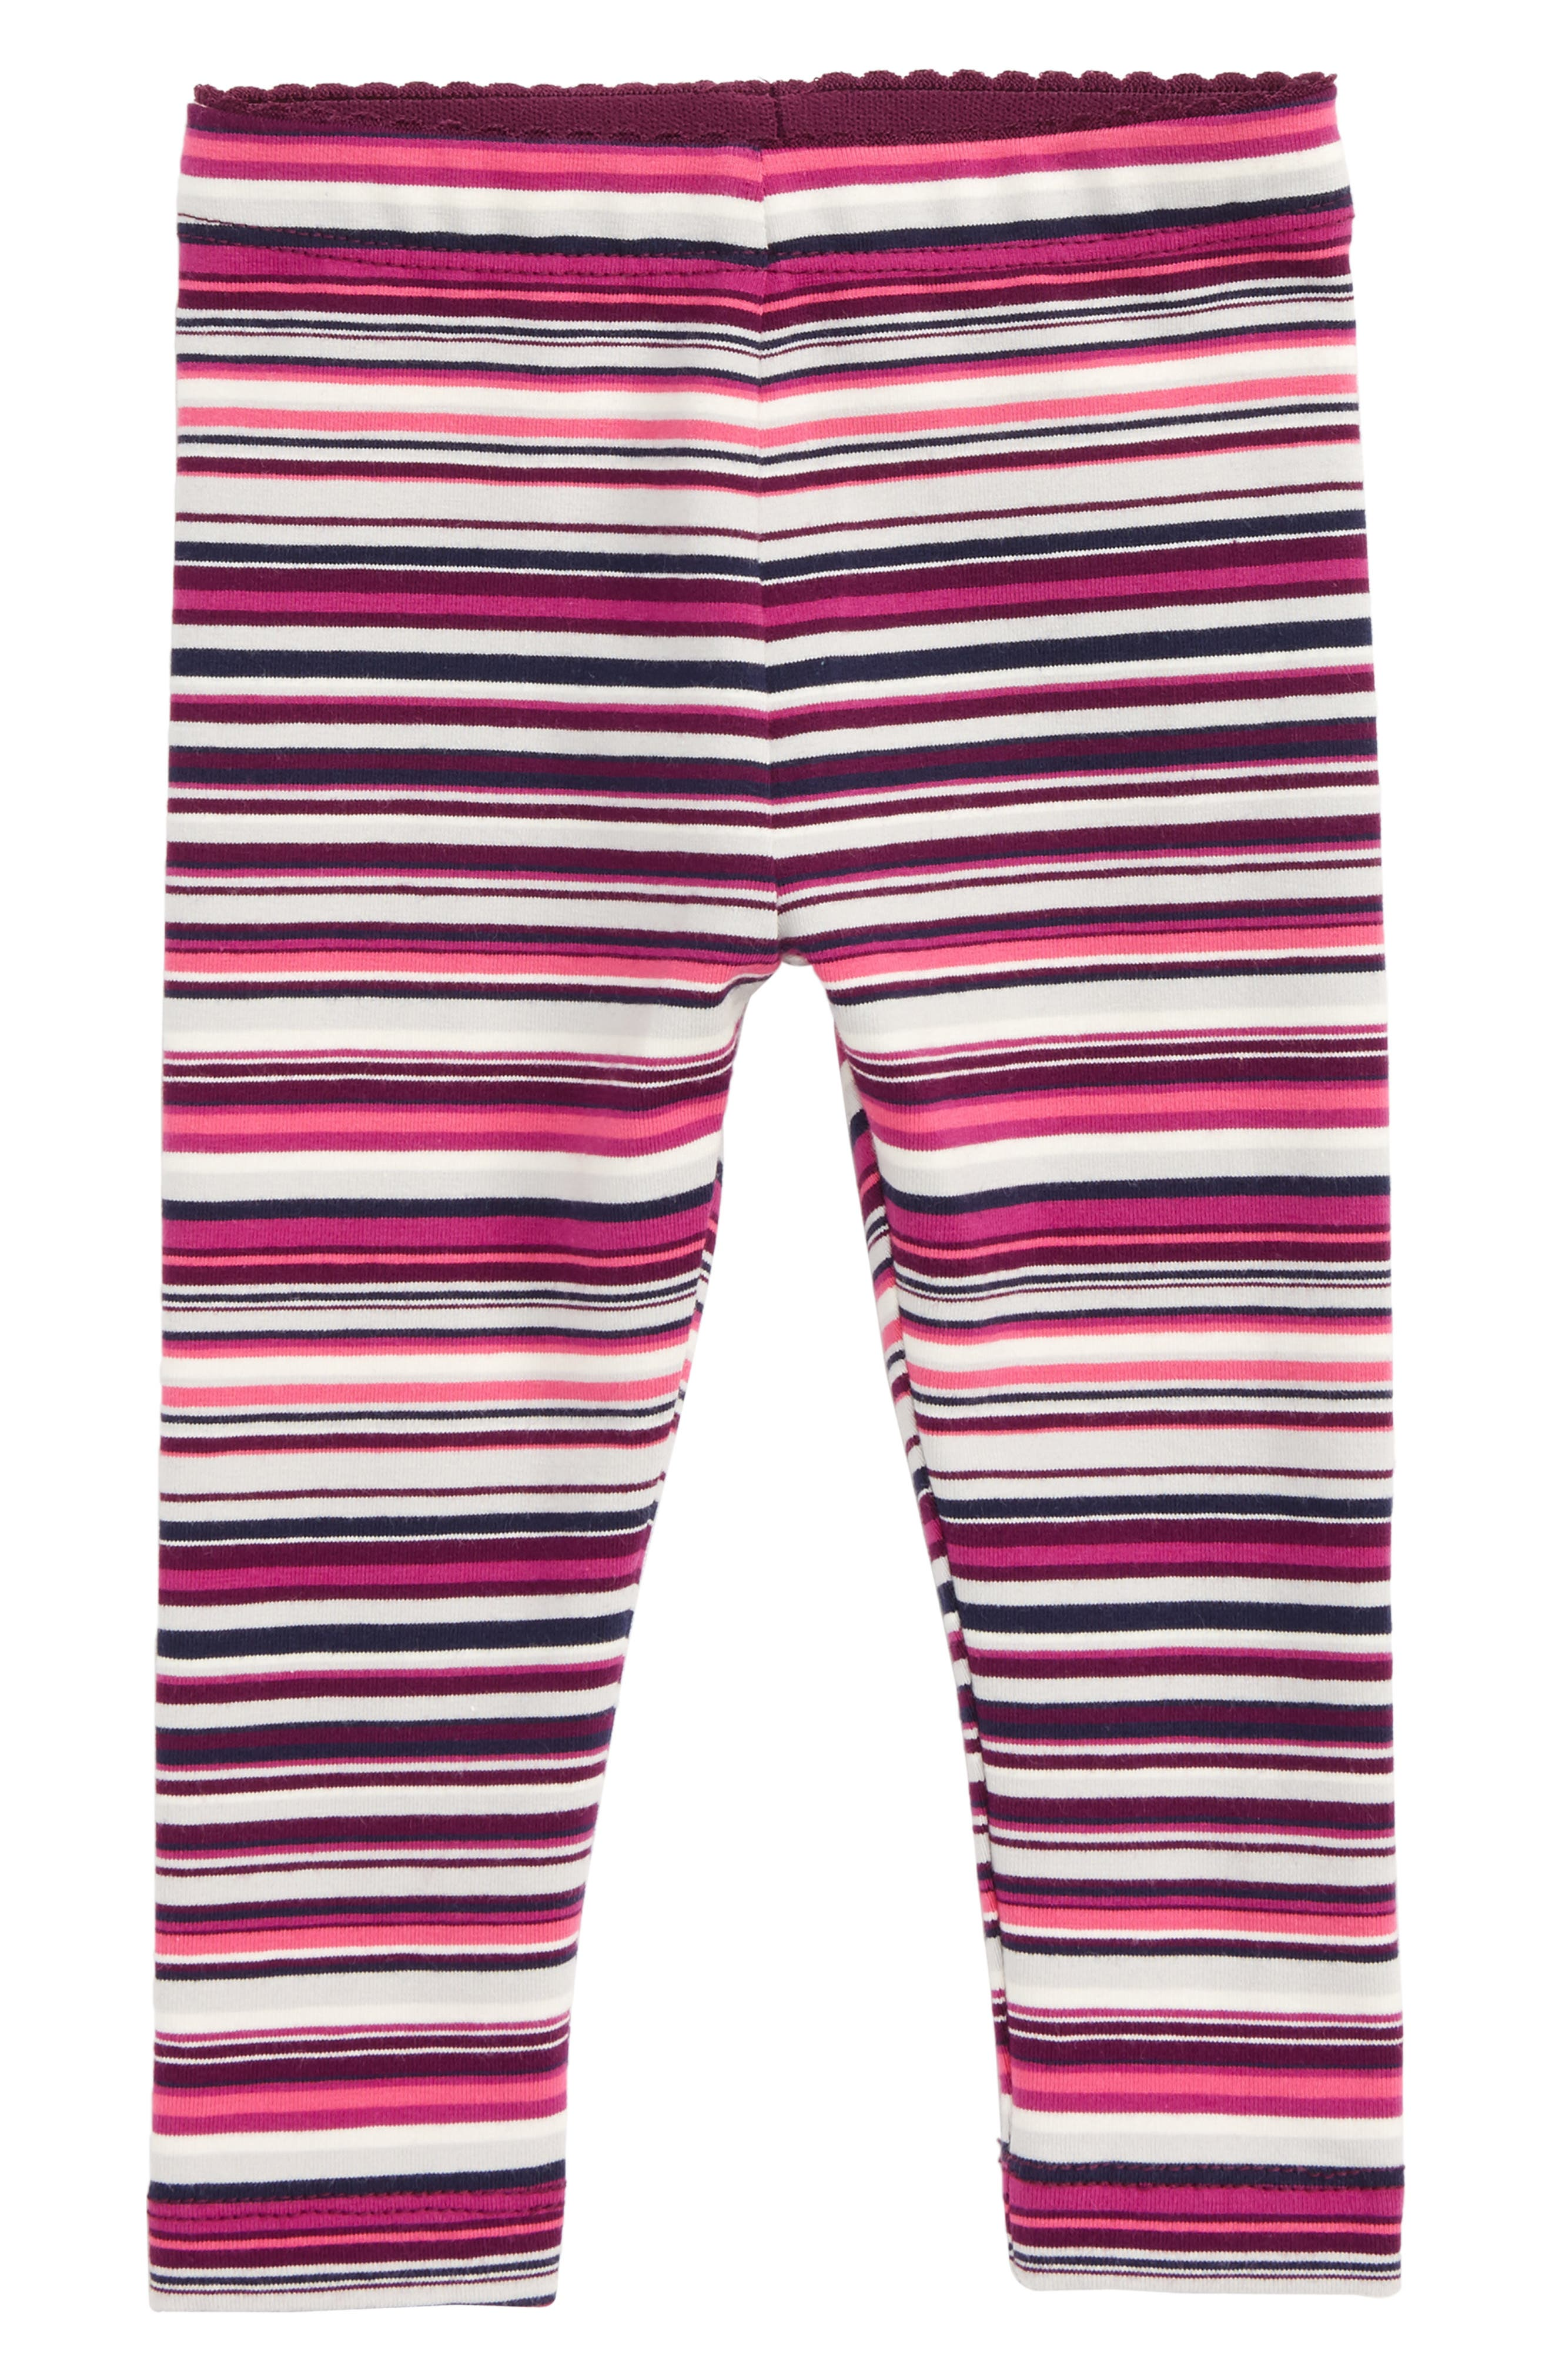 Main Image - Tea Collection Stripe Leggings (Baby Girls)